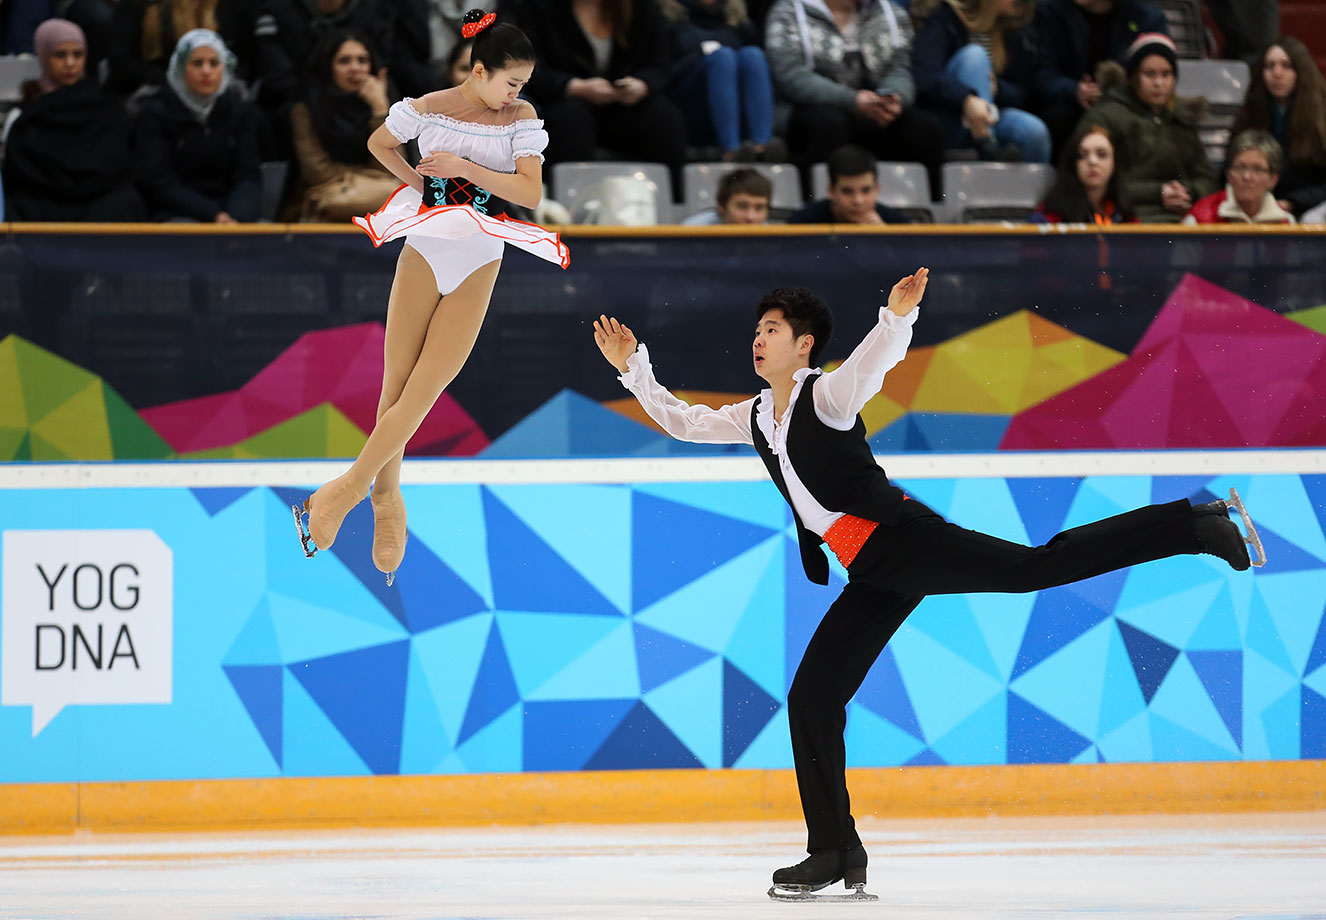 Bowen Li (CHN) and Yumeng Gao (CHN) perform in the Free Program of the Pairs Figure Skating competition at Hamar Olympic Amphitheatre on Feb. 15, 2016 during the Winter Youth Olympic Games in Lillehammer, Norway.